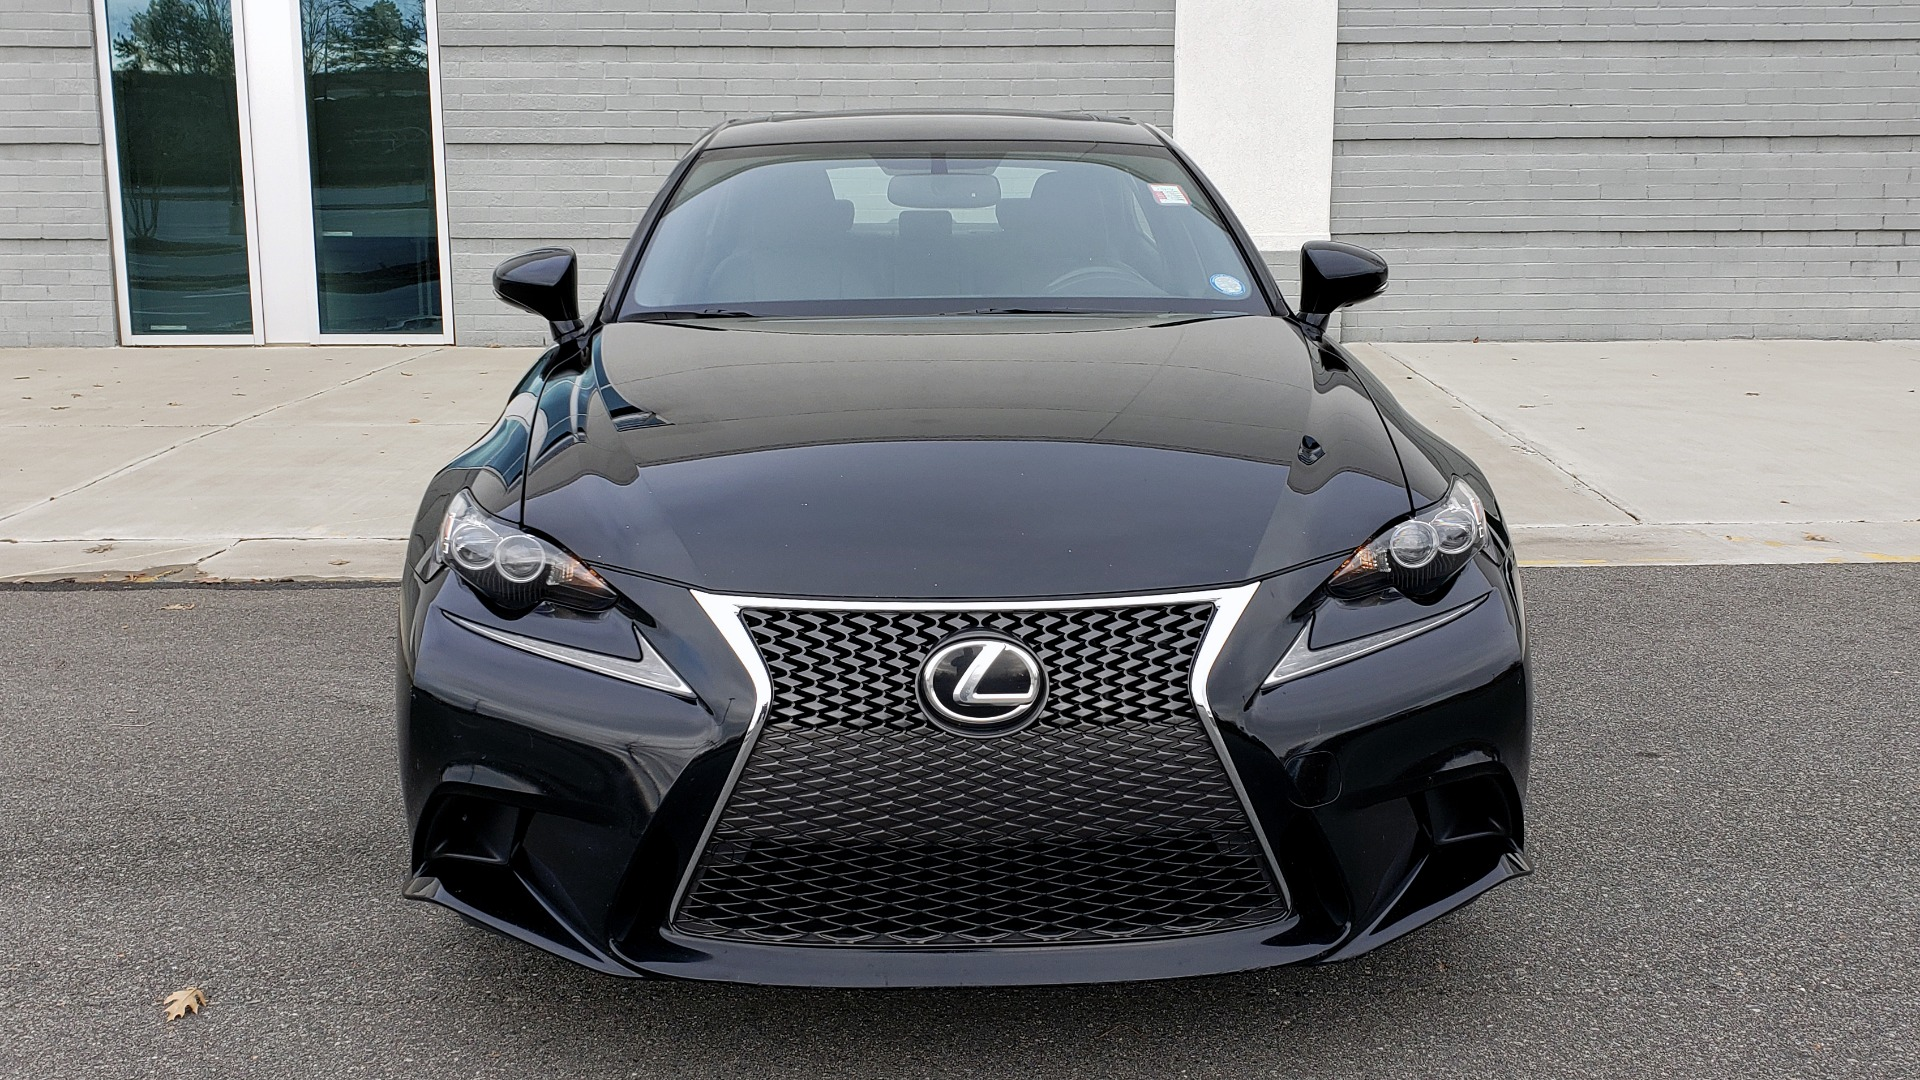 Used 2015 Lexus IS 250 F-SPORT / BLIND SPOT MON / SUNROOF / REARVIEW for sale Sold at Formula Imports in Charlotte NC 28227 18